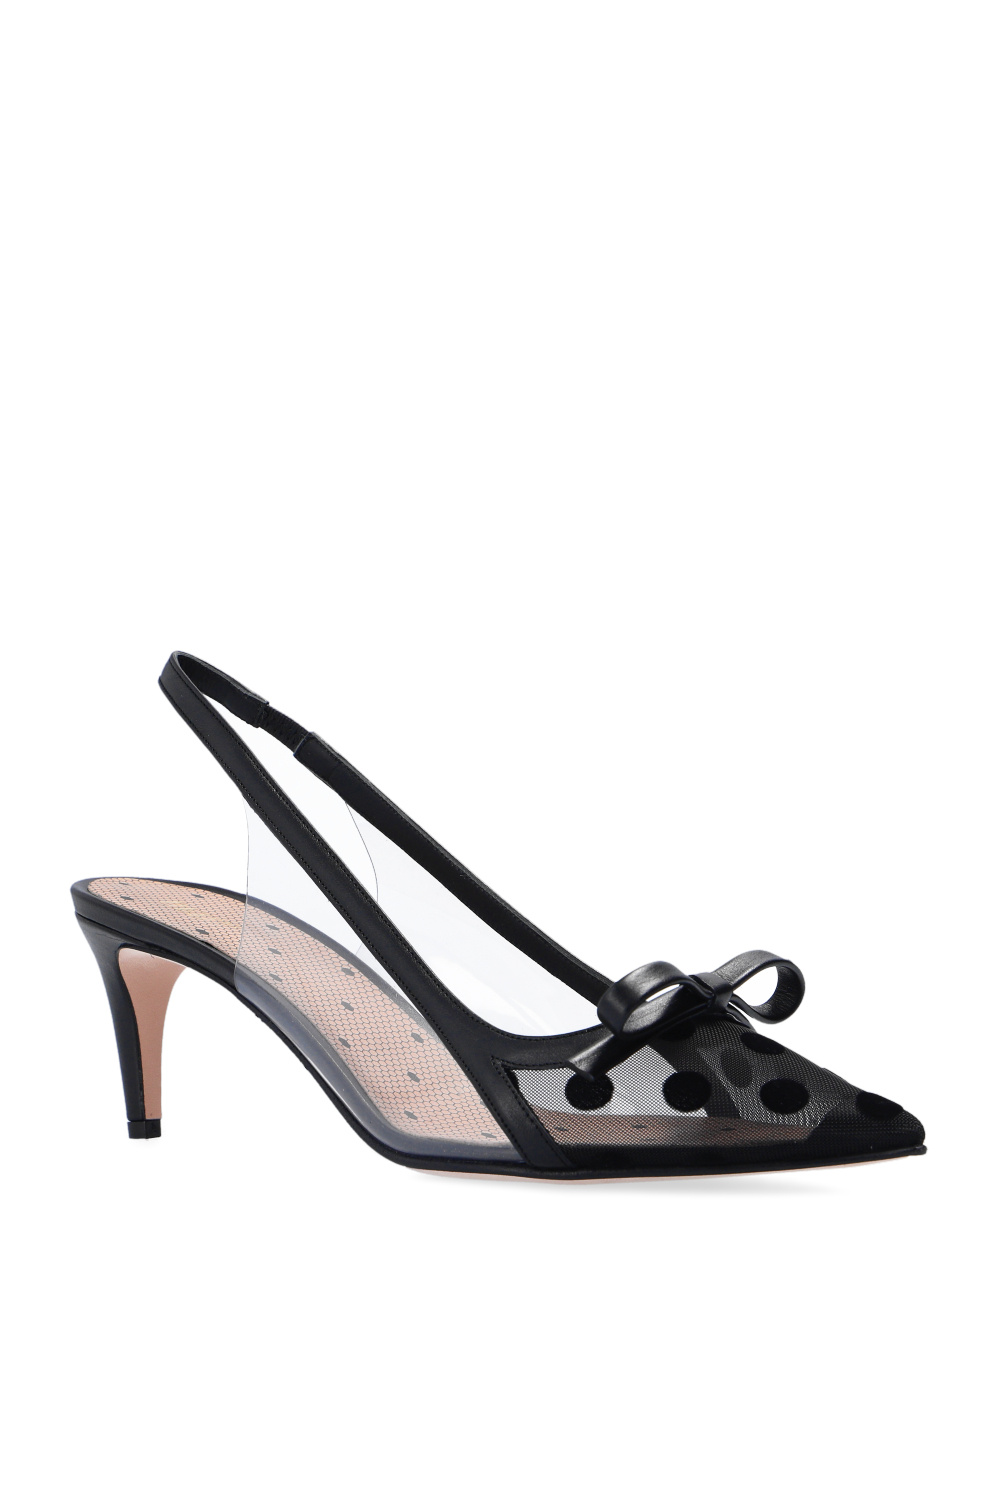 Red Valentino Pumps with geometrical pattern